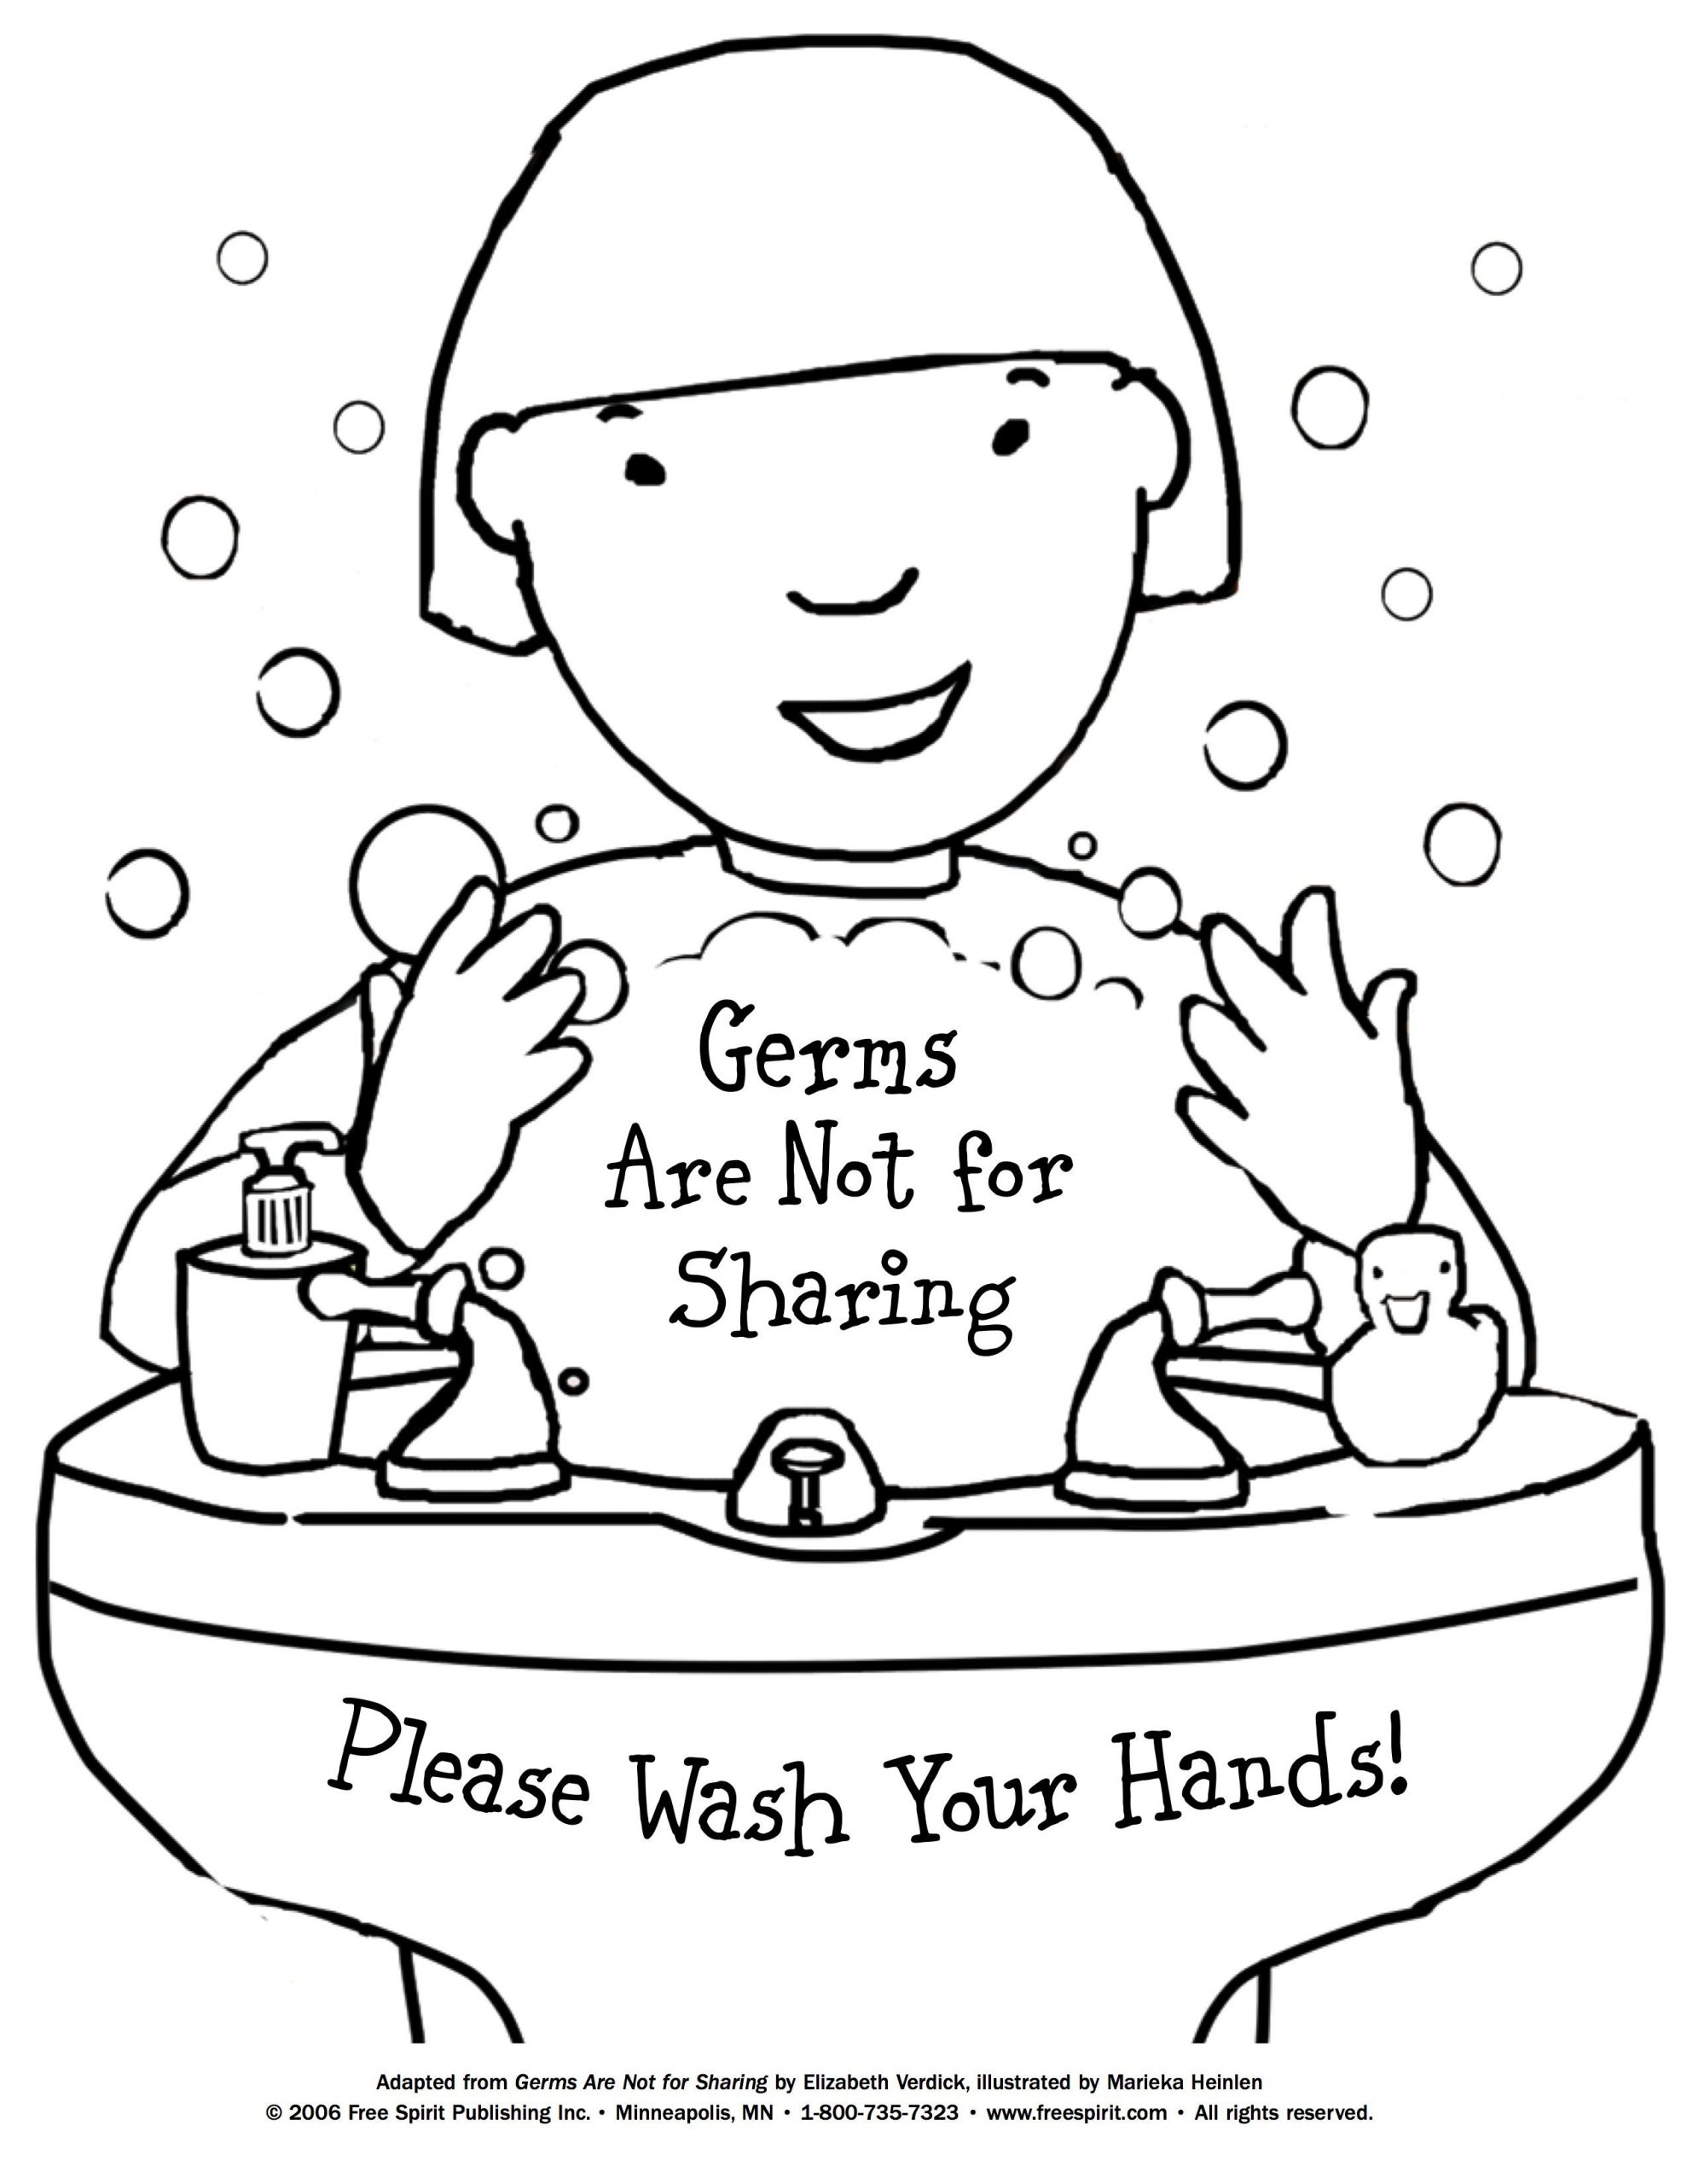 Germ Worksheets for First Grade Free Printable Coloring Page to Teach Kids About Hygiene